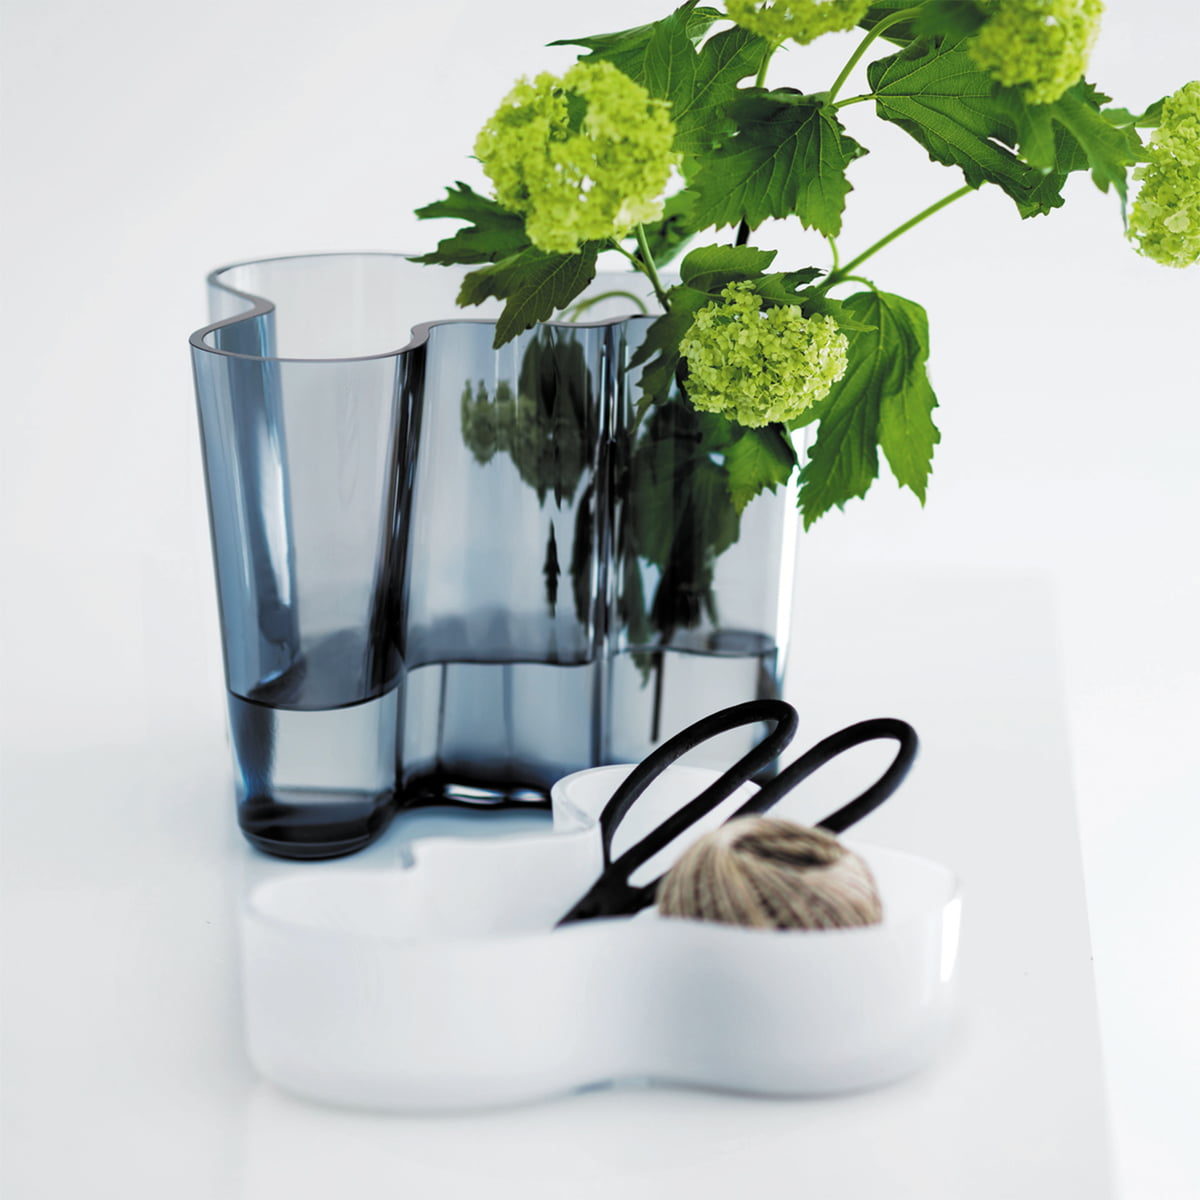 aalto vase savoy 160 mm von iittala connox shop. Black Bedroom Furniture Sets. Home Design Ideas